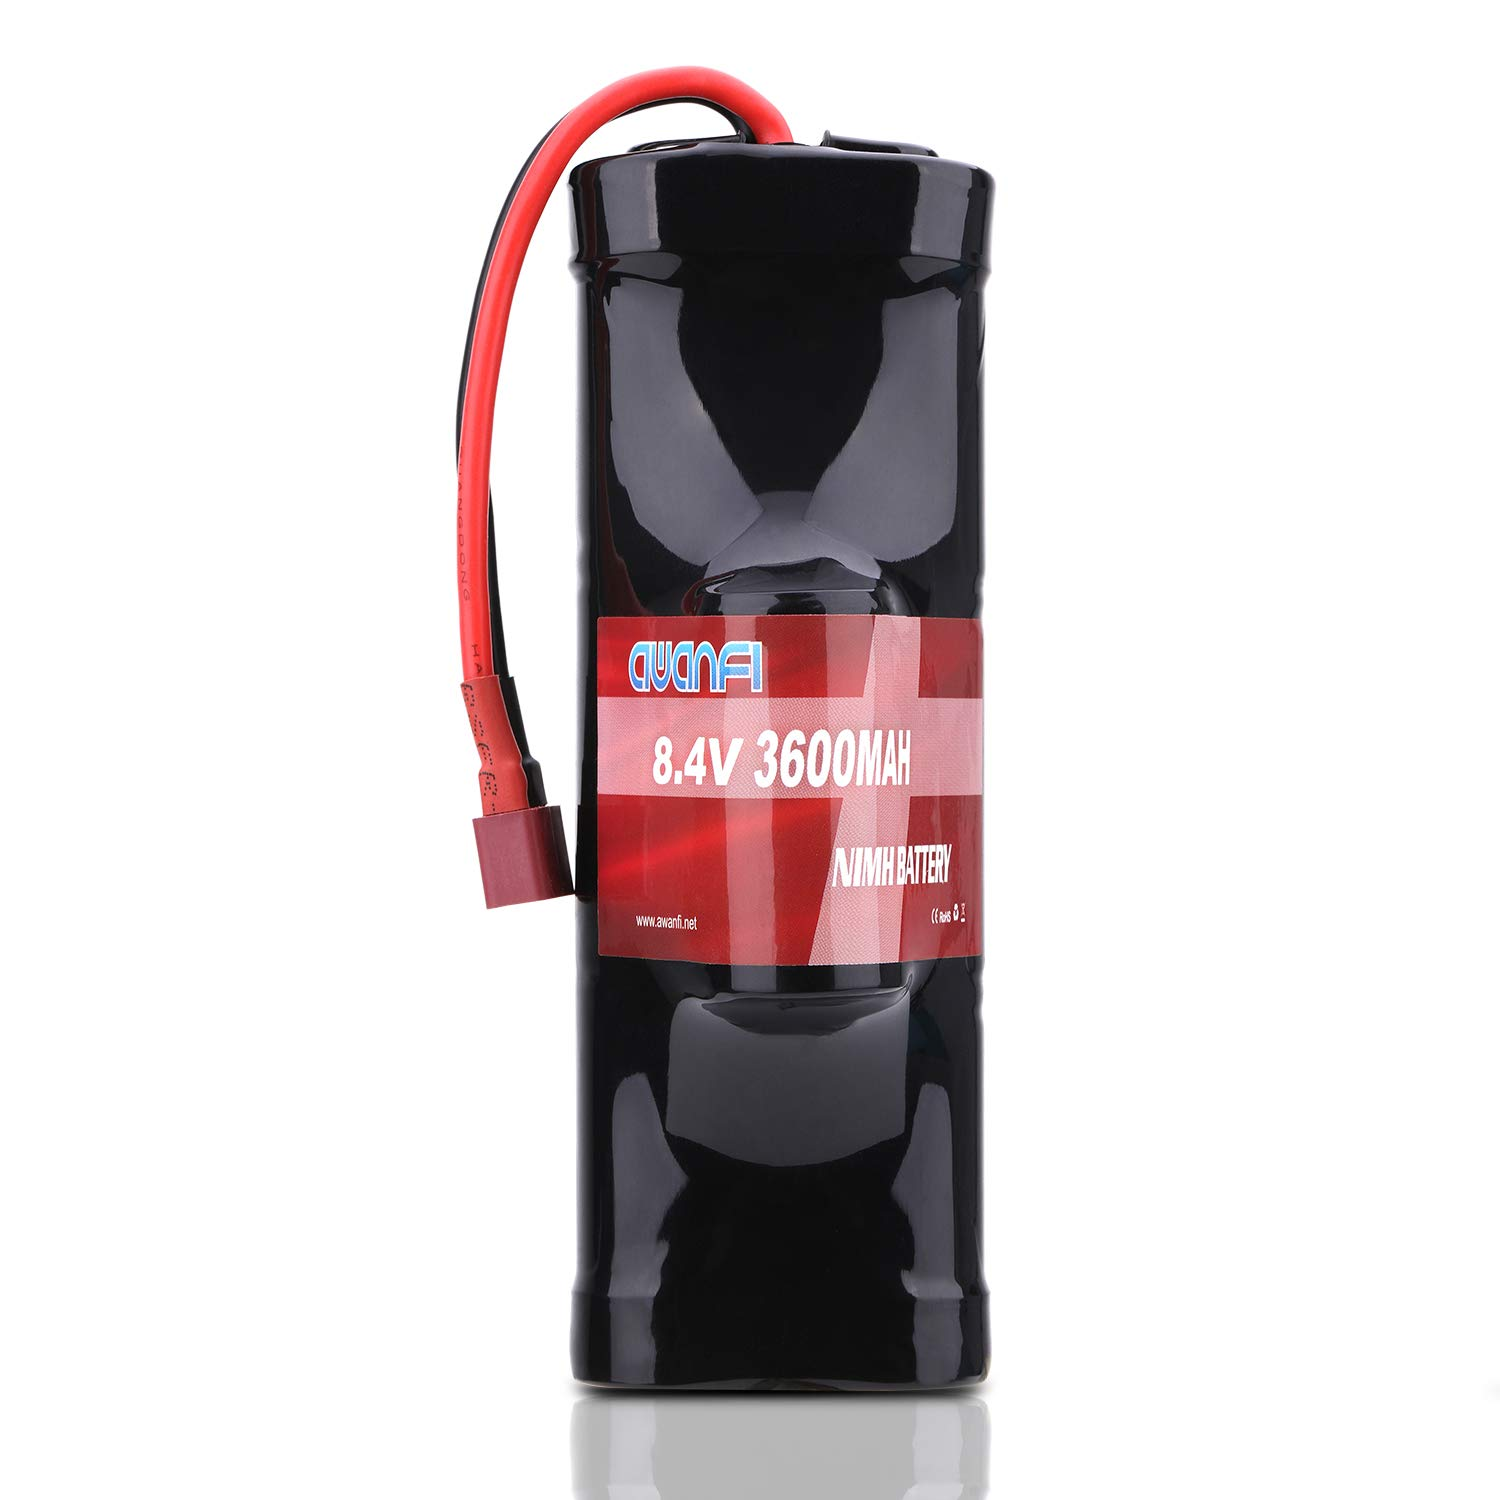 AWANFI 8.4V NiMH Battery 7-Cell 3600mAh Hump Pack NiMH RC Battery with Deans Plug for Most 1/10 Scale RC Car RC Truck RC Boat Traxxas LOSI Associated HPI Kyosho Tamiya Hobby